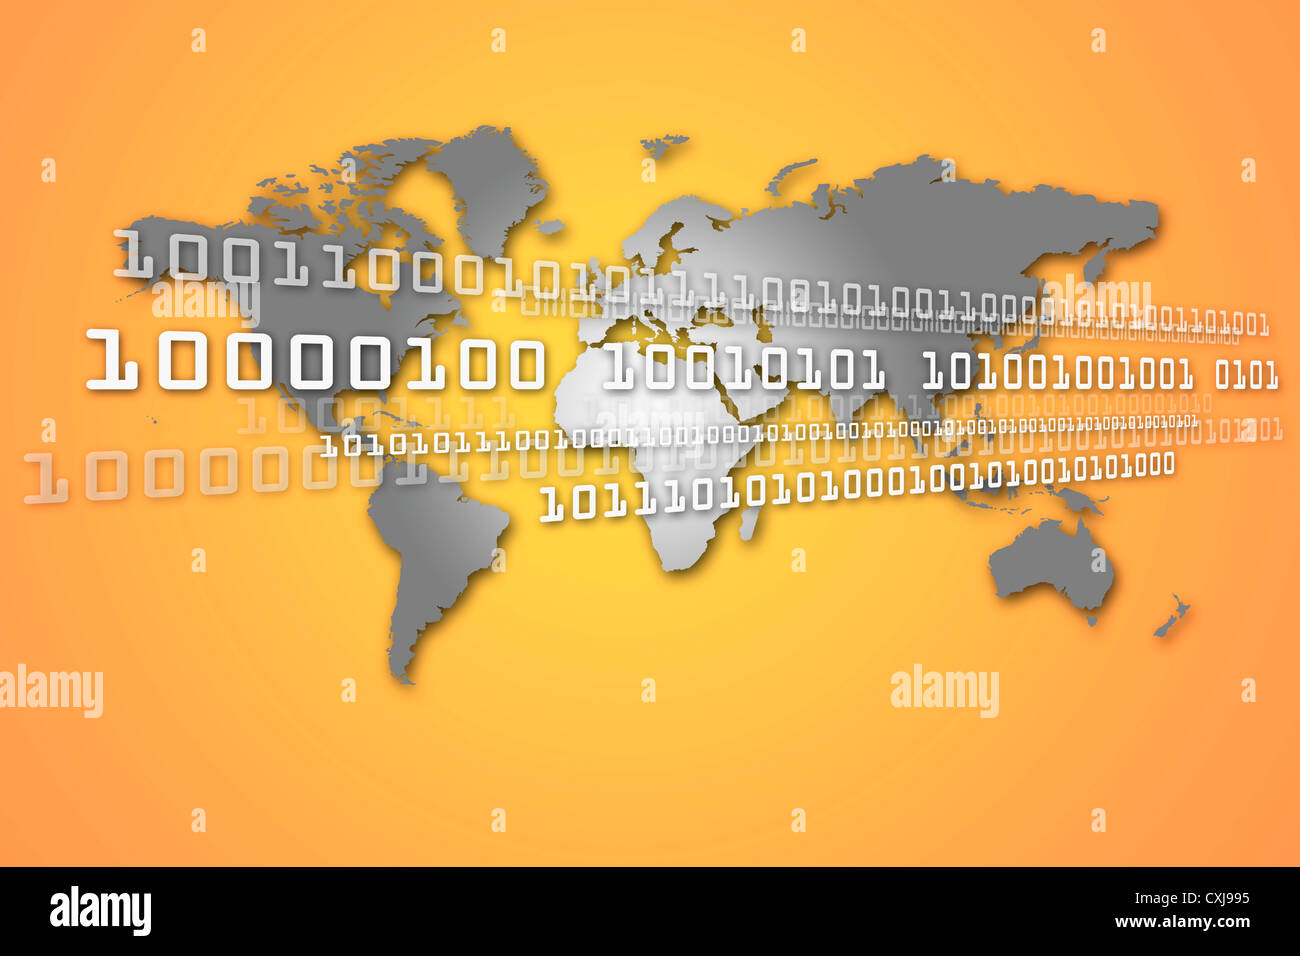 World map with binary code against orange background - Stock Image